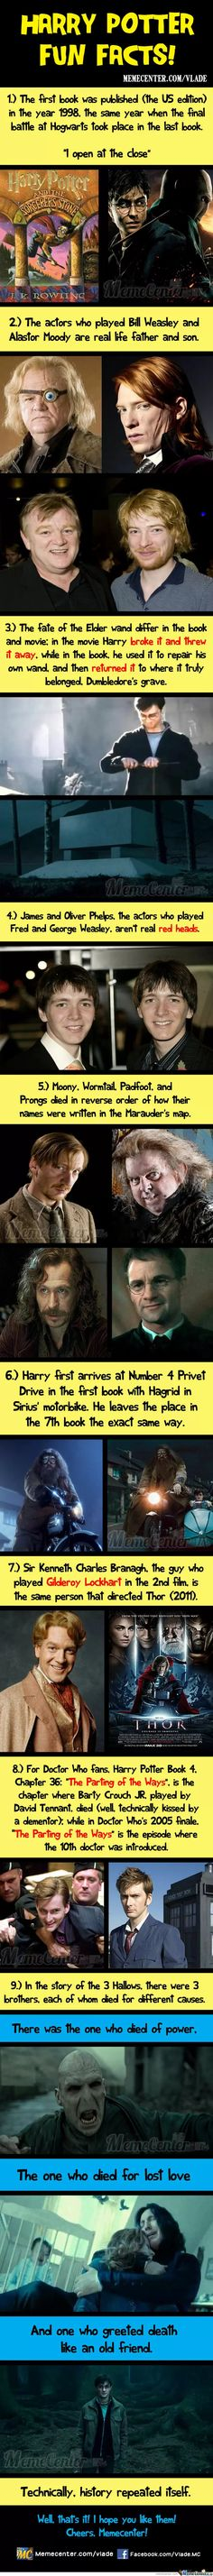 Funny pictures about harry potter facts. oh, and cool pics about harry potter facts. also, harry potter facts. Harry Potter Gif, Immer Harry Potter, Harry Potter Fun Facts, Mundo Harry Potter, Harry Potter Pictures, Potter Facts, Harry Potter Universal, Harry Potter Characters, Harry Potter World